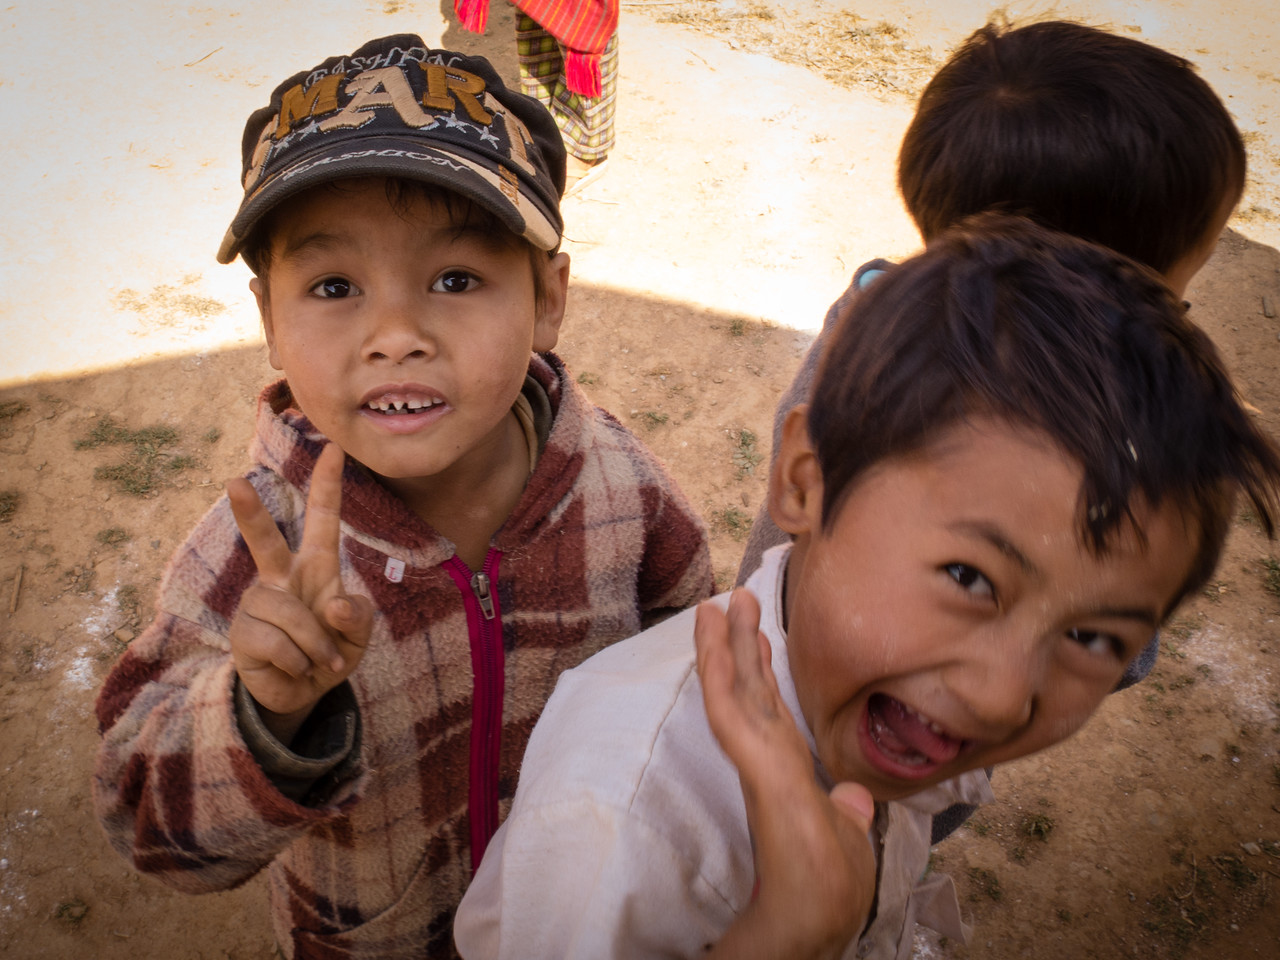 Burmese Children Cutting Up for the Camera